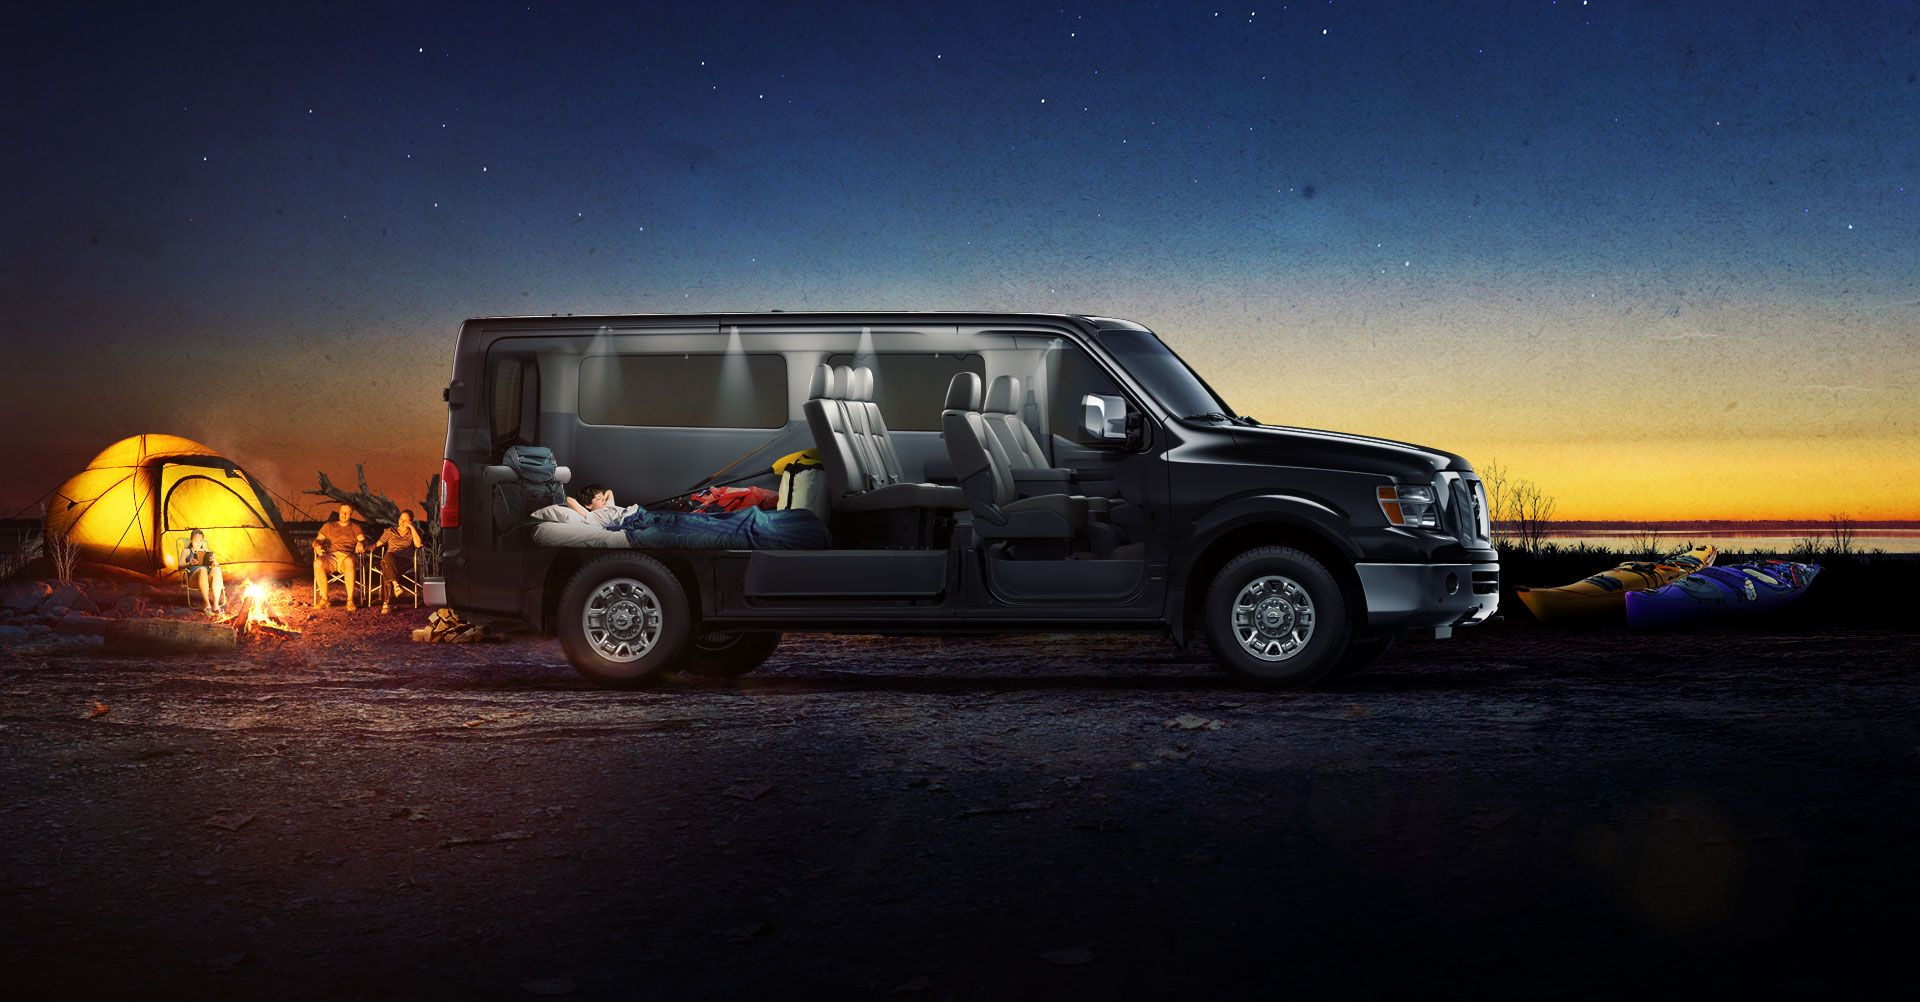 Nissan commercial vehicles the nv passenger van offers you a spacious flexible space ready for your family find out all you need to know about the newest